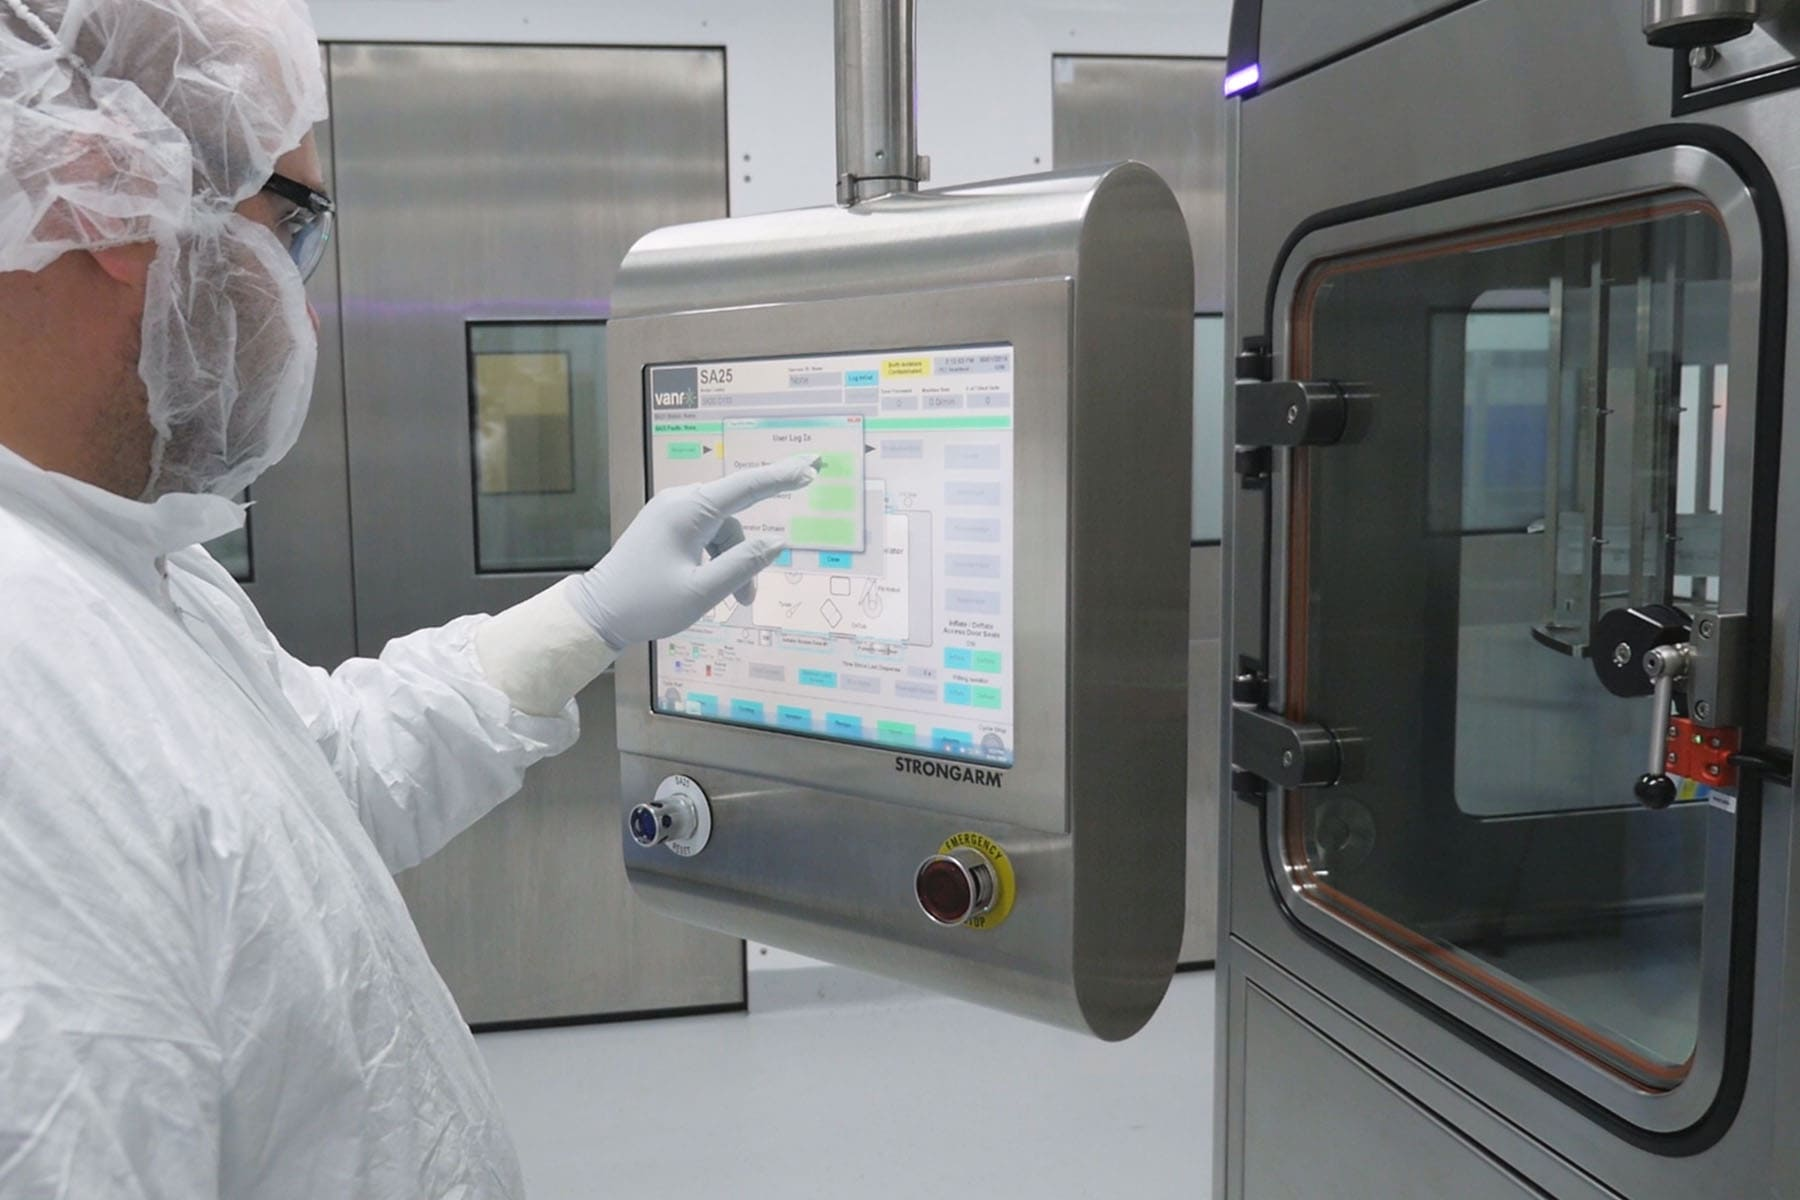 An operator uses the HMI controls on the SA25 at FUJIFILM Diosynth Biotechnologies.